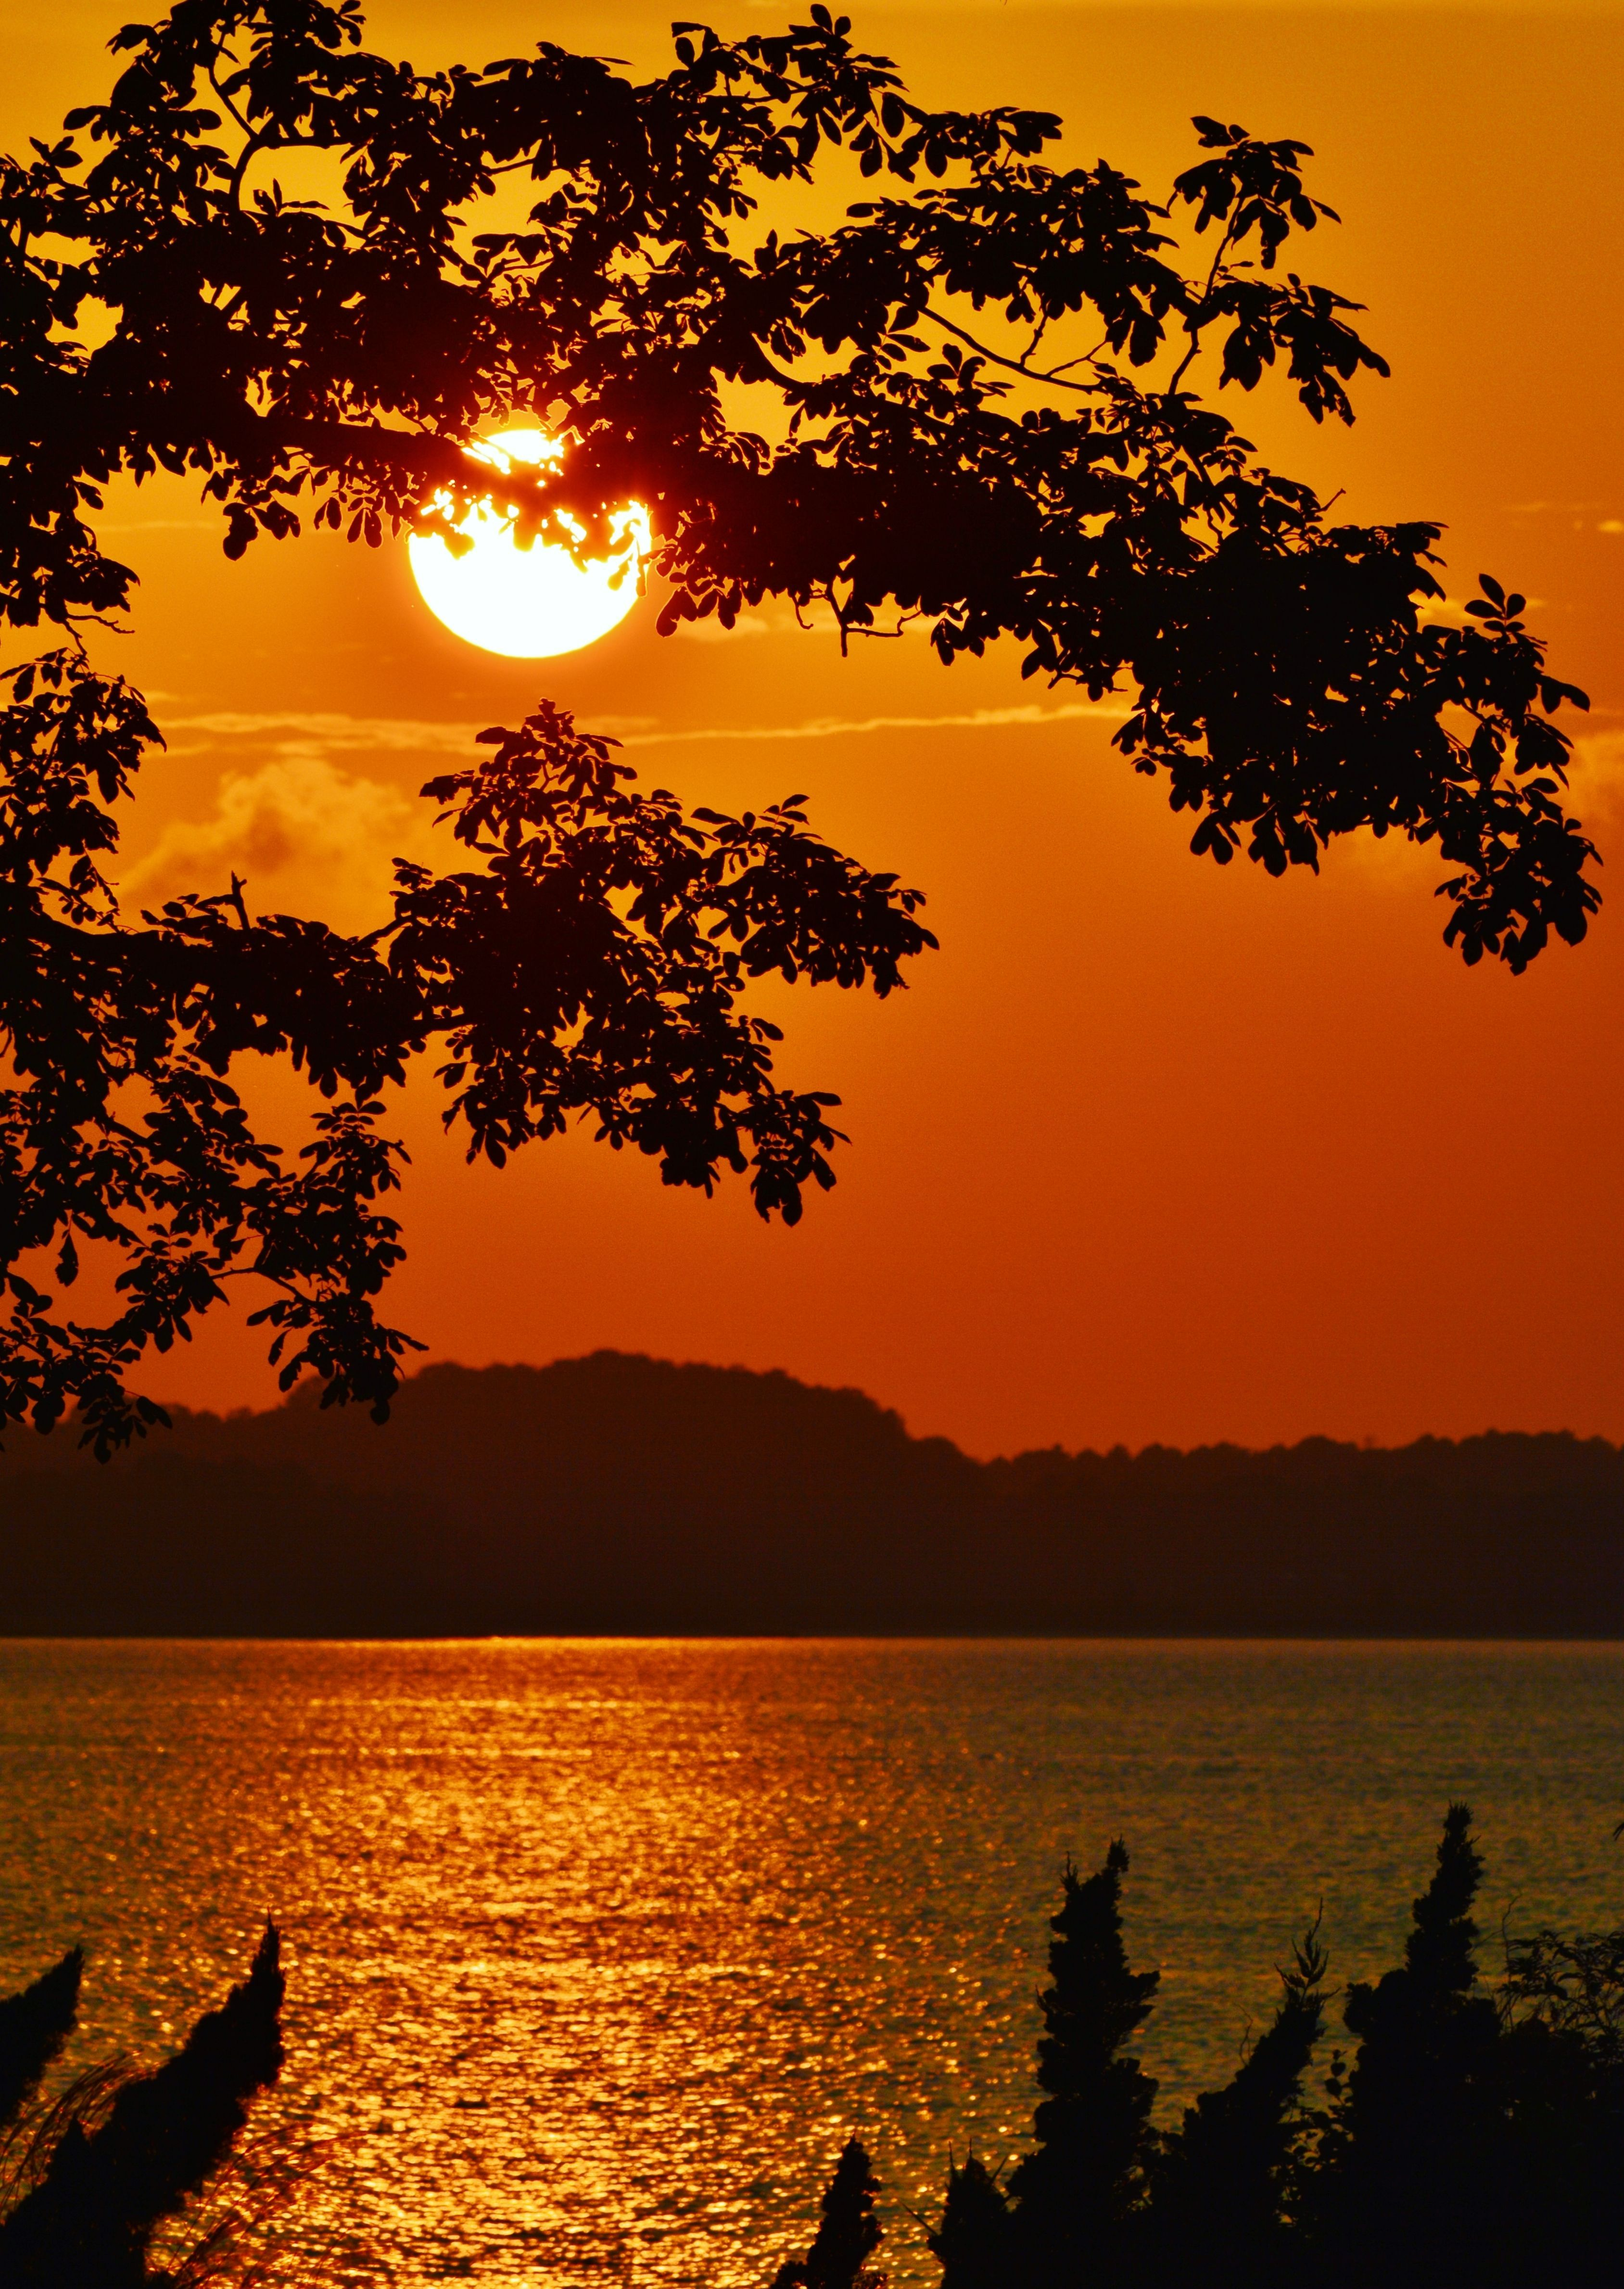 Paradise Poster Zazzle Com Magariungiorno A View Through The Trees Of A Golden Sunset On The Bay Beautiful Nature Wallpaper Sunset Nature Sunset Photography